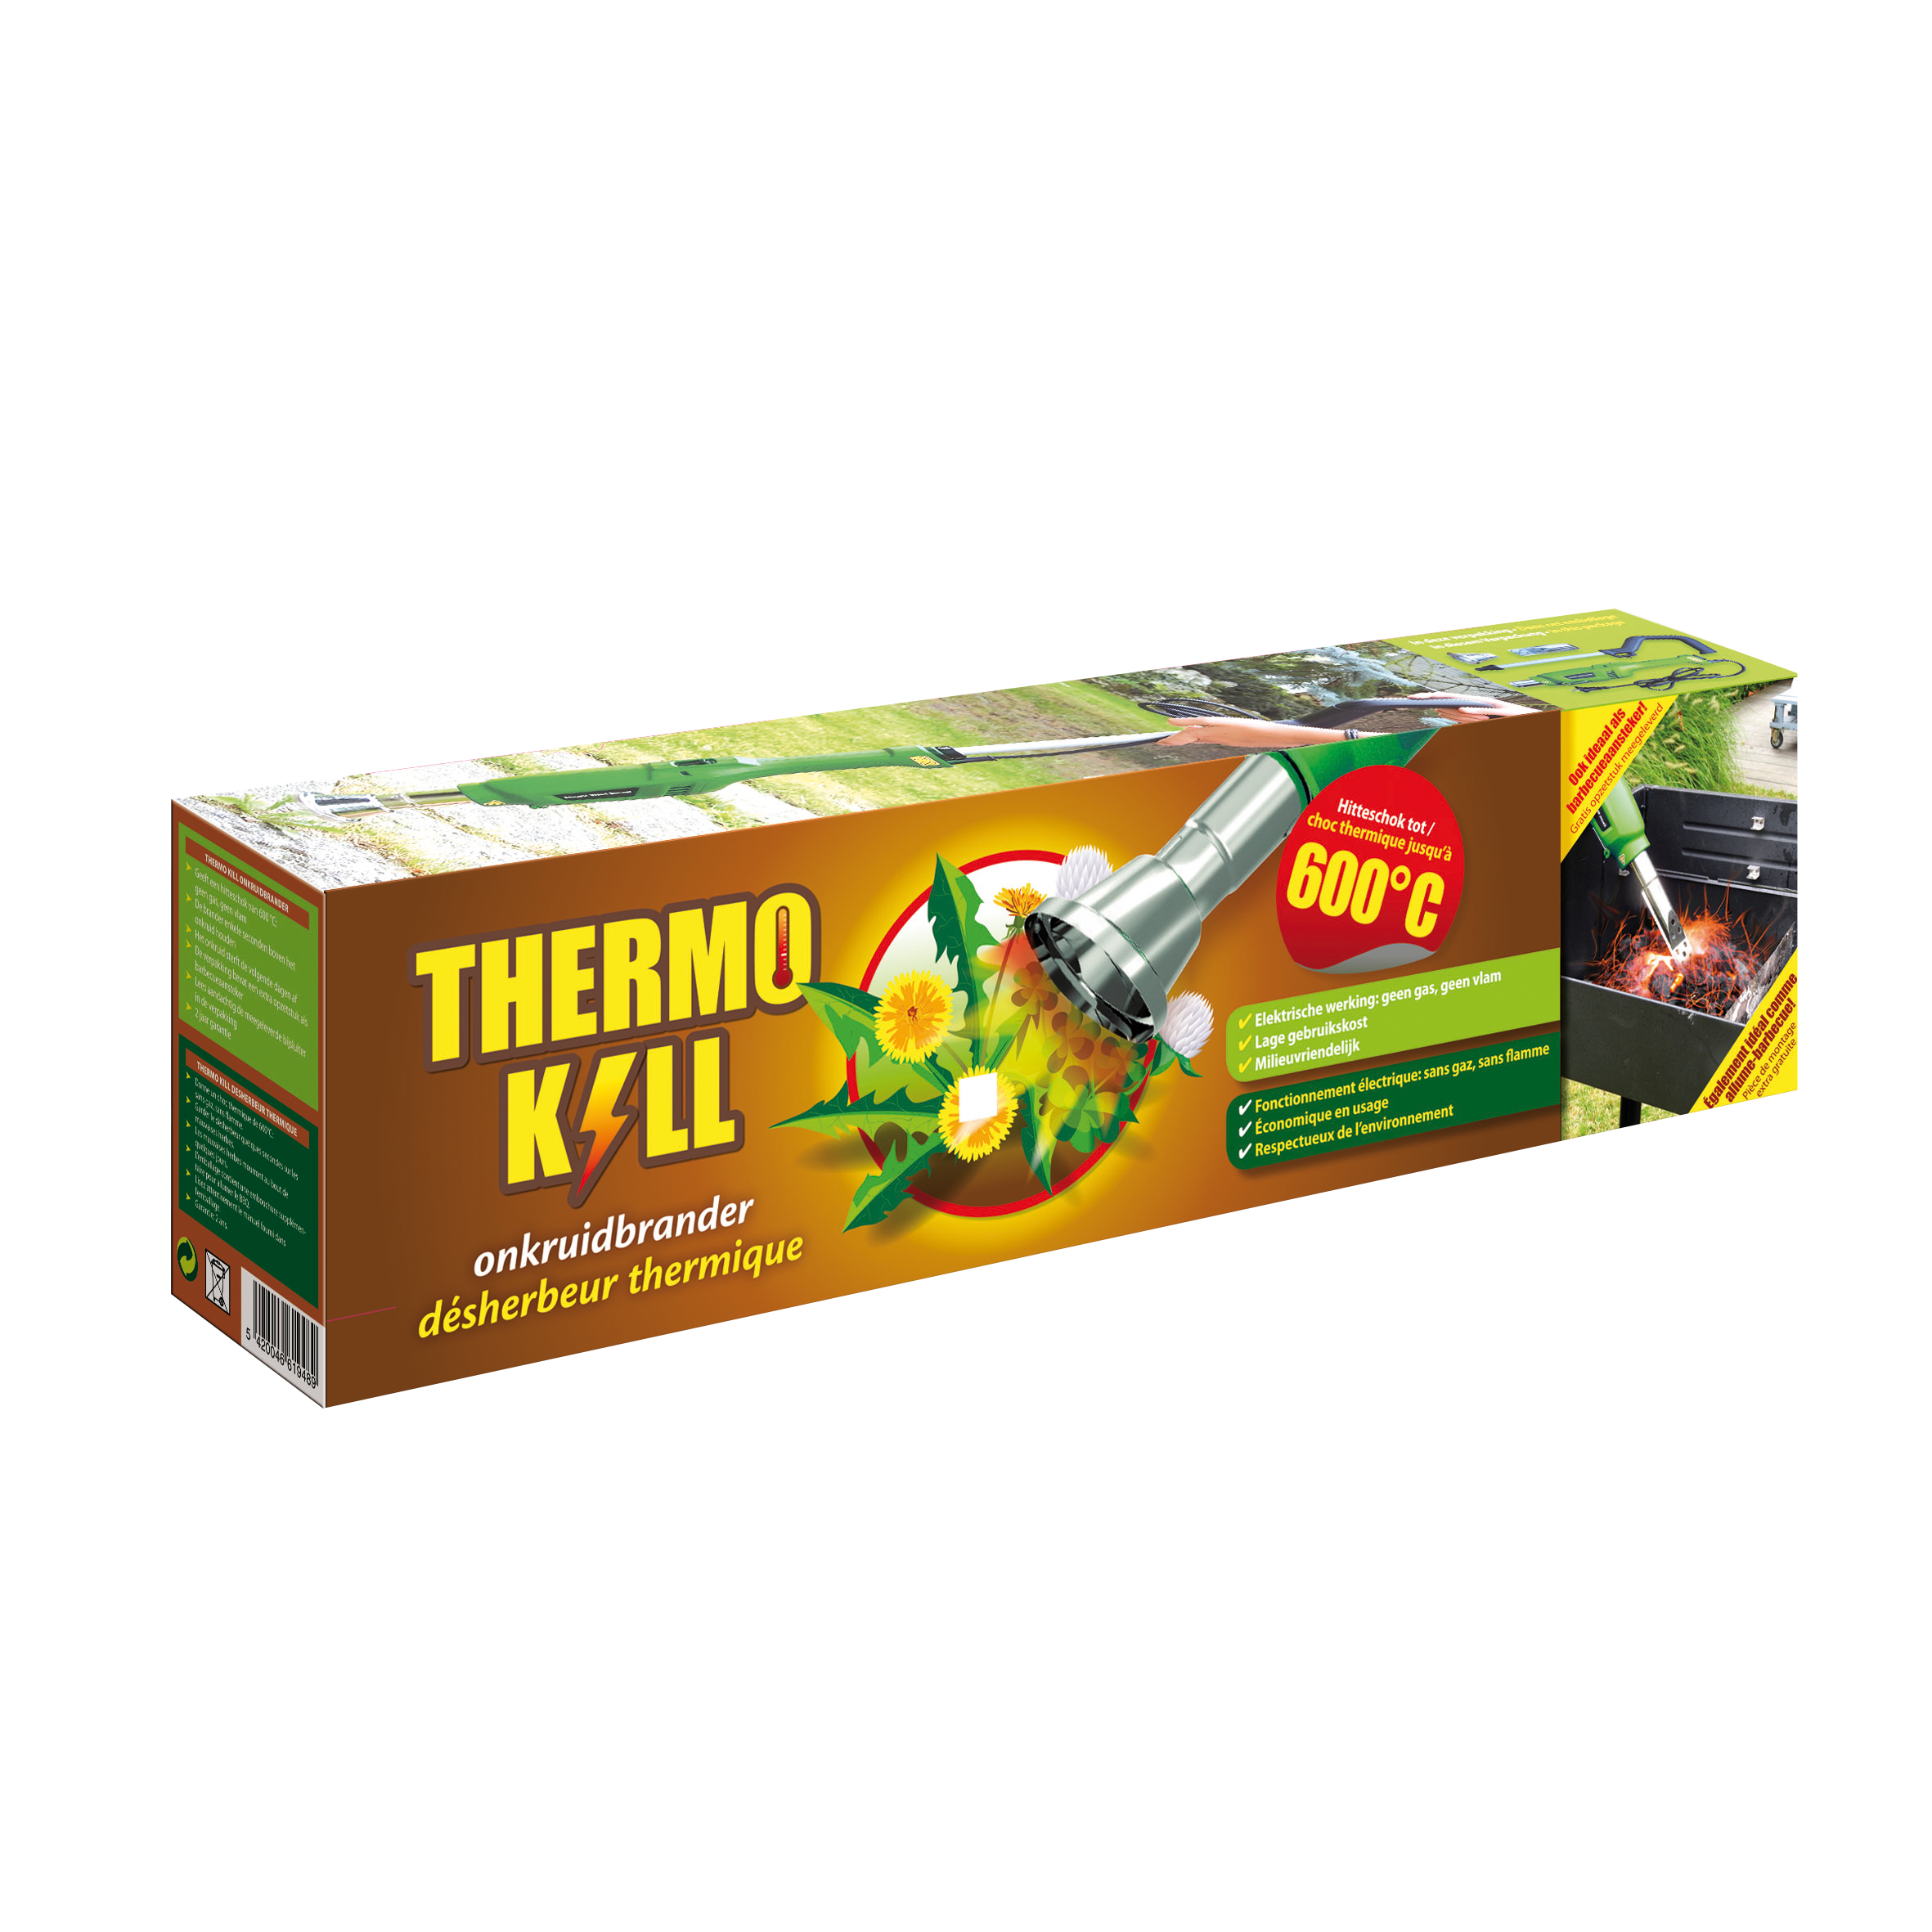 Thermo Kill Désherbeur image